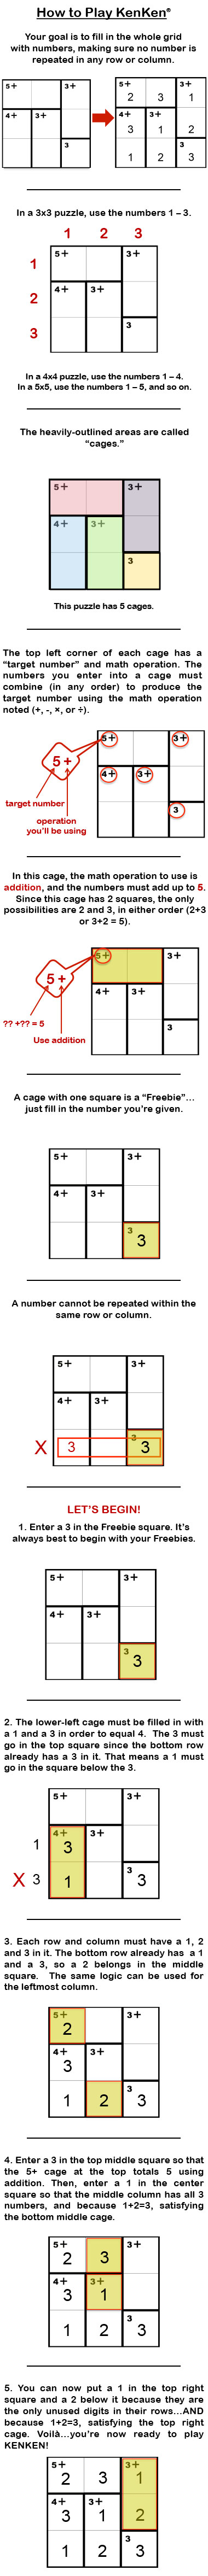 Kenken Puzzle Rules - How To Play This Amazing Puzzle & Brain Teaser! - Printable Kenken Puzzle 5X5